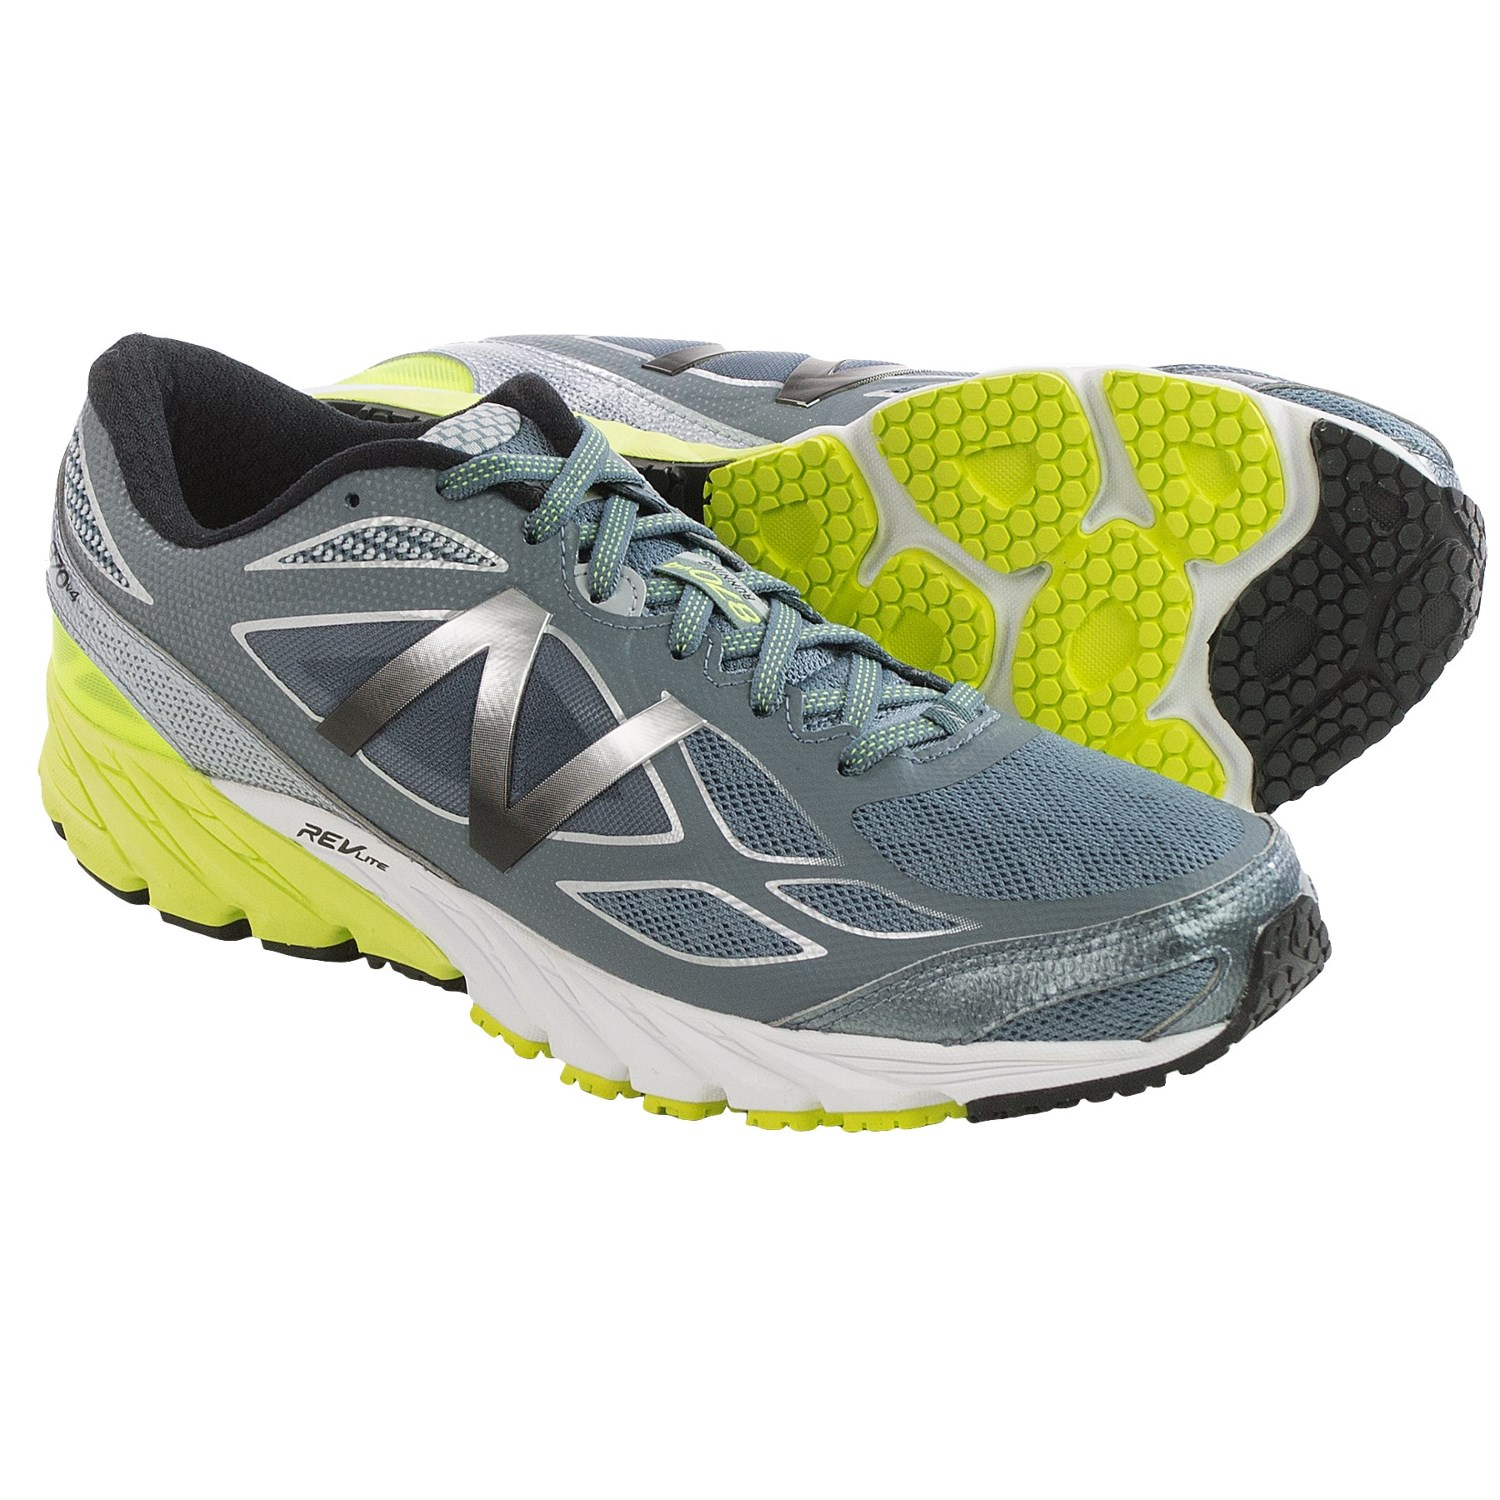 New Balance 870v4 Running Shoes (For Men). Click to expand